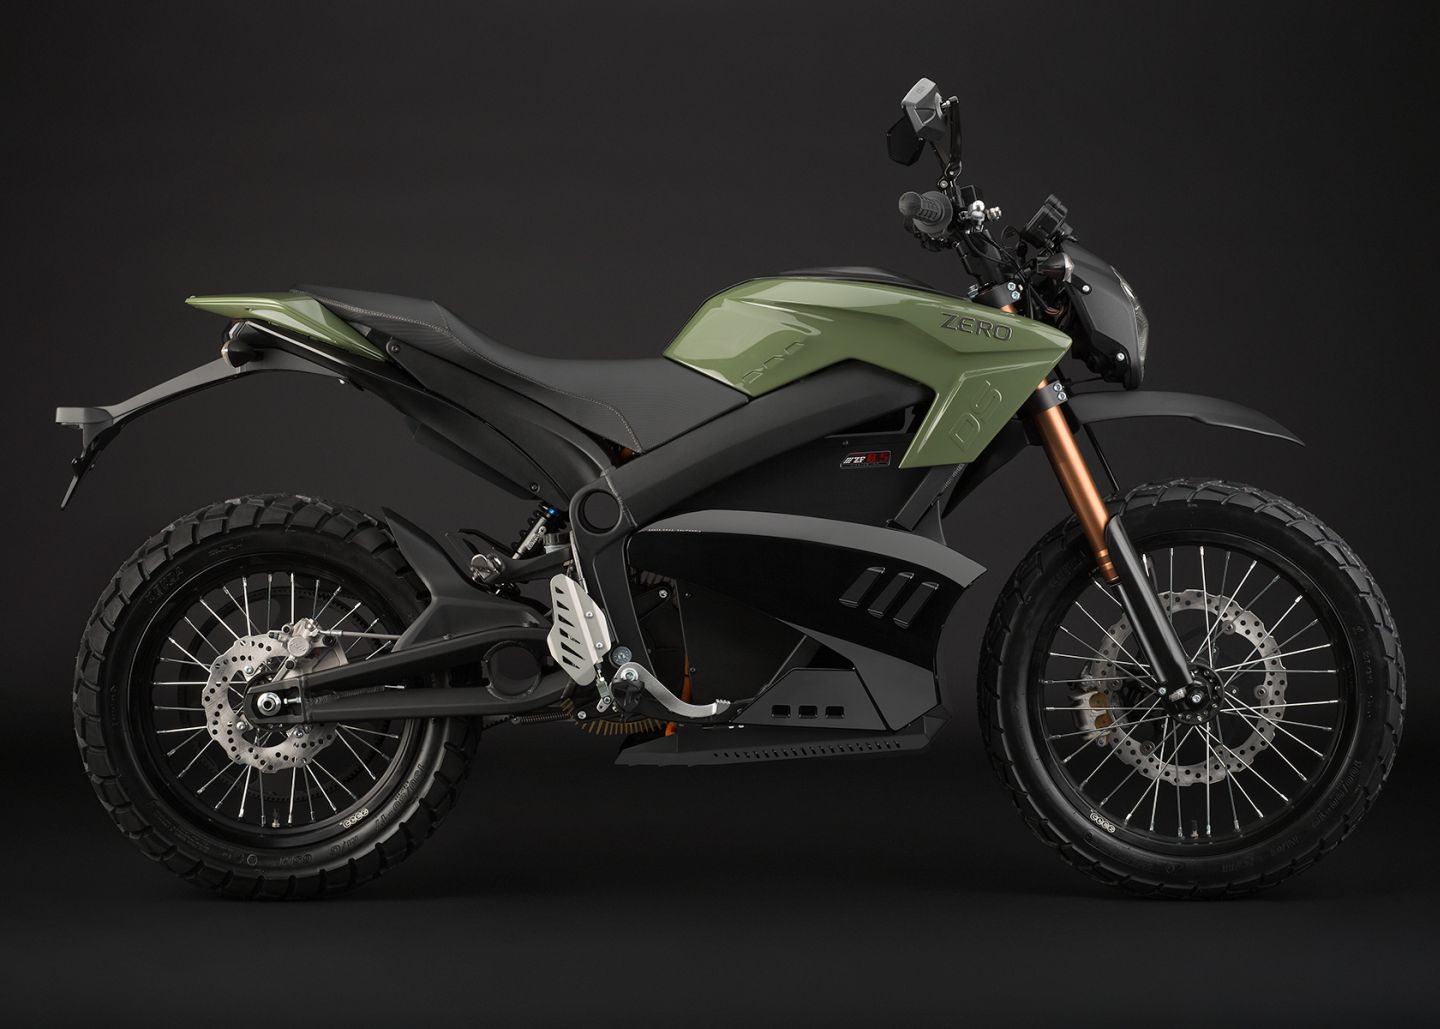 Yamaha Vx Sport >> 2013 Zero DS Dual-Sport Electric Bike Pricing - autoevolution